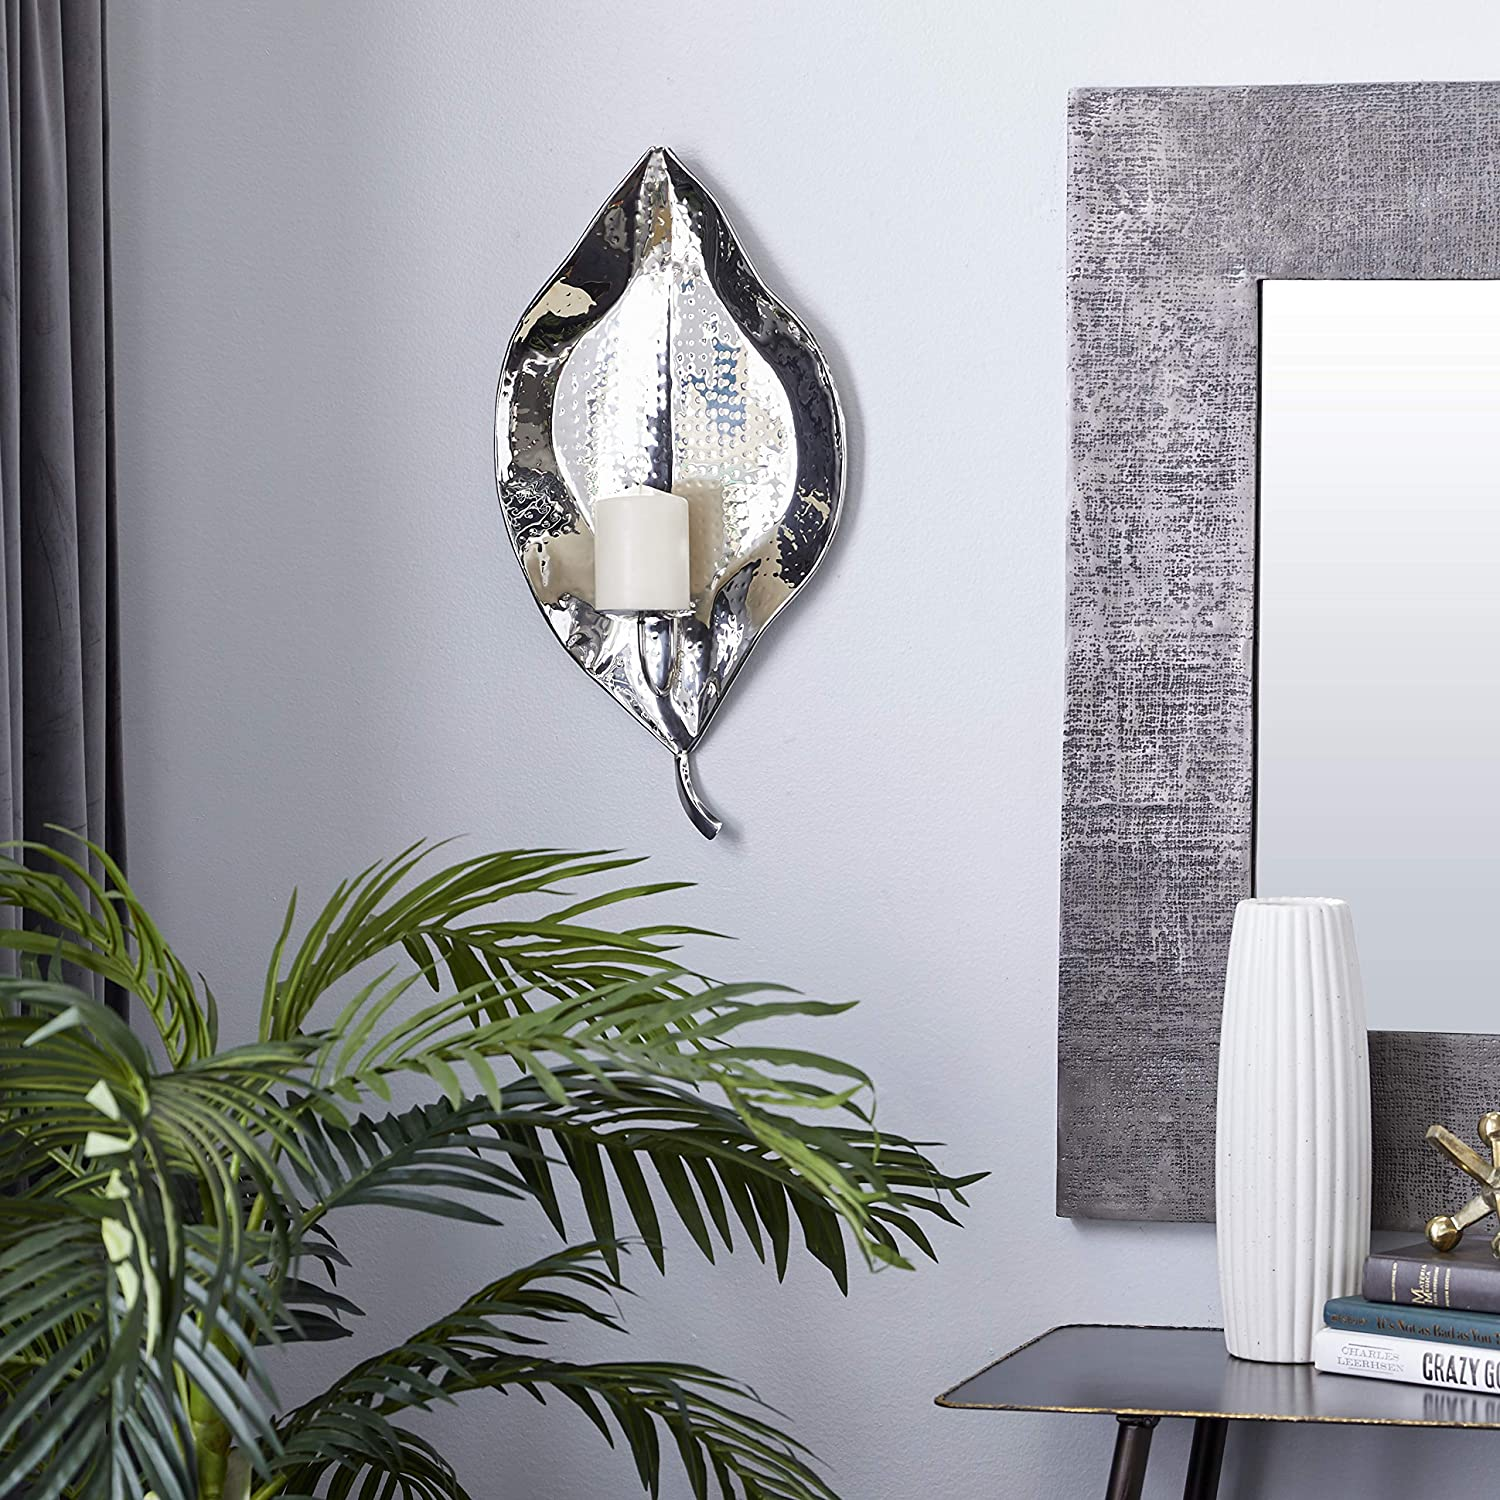 Deco 79 Candlestick Holders Wall Sconce, Silver